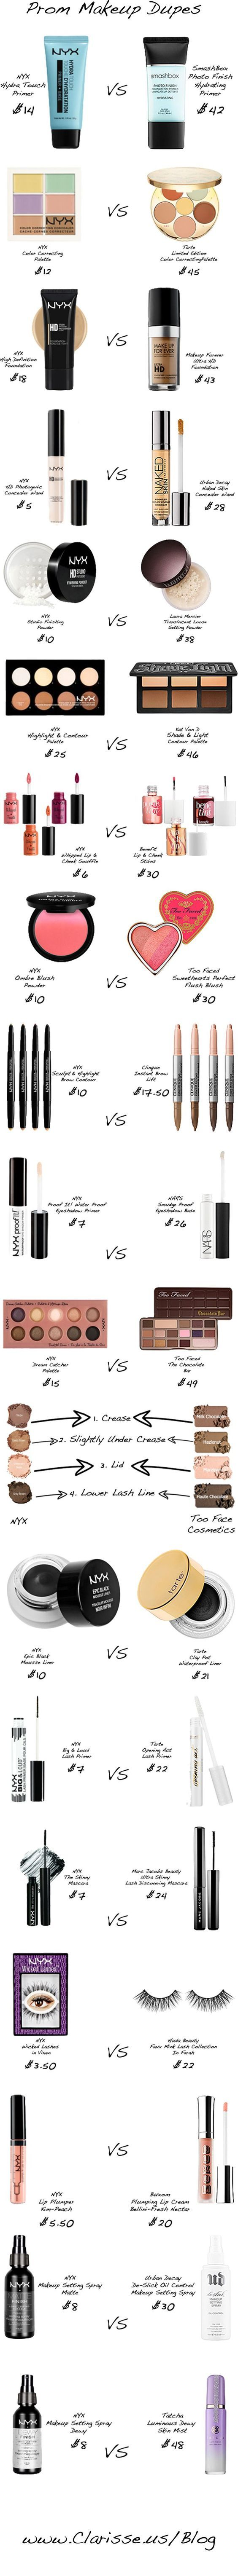 These 10 Makeup Dupe Hacks have saved me A TON OF MONEY! I use makeup regularly ...